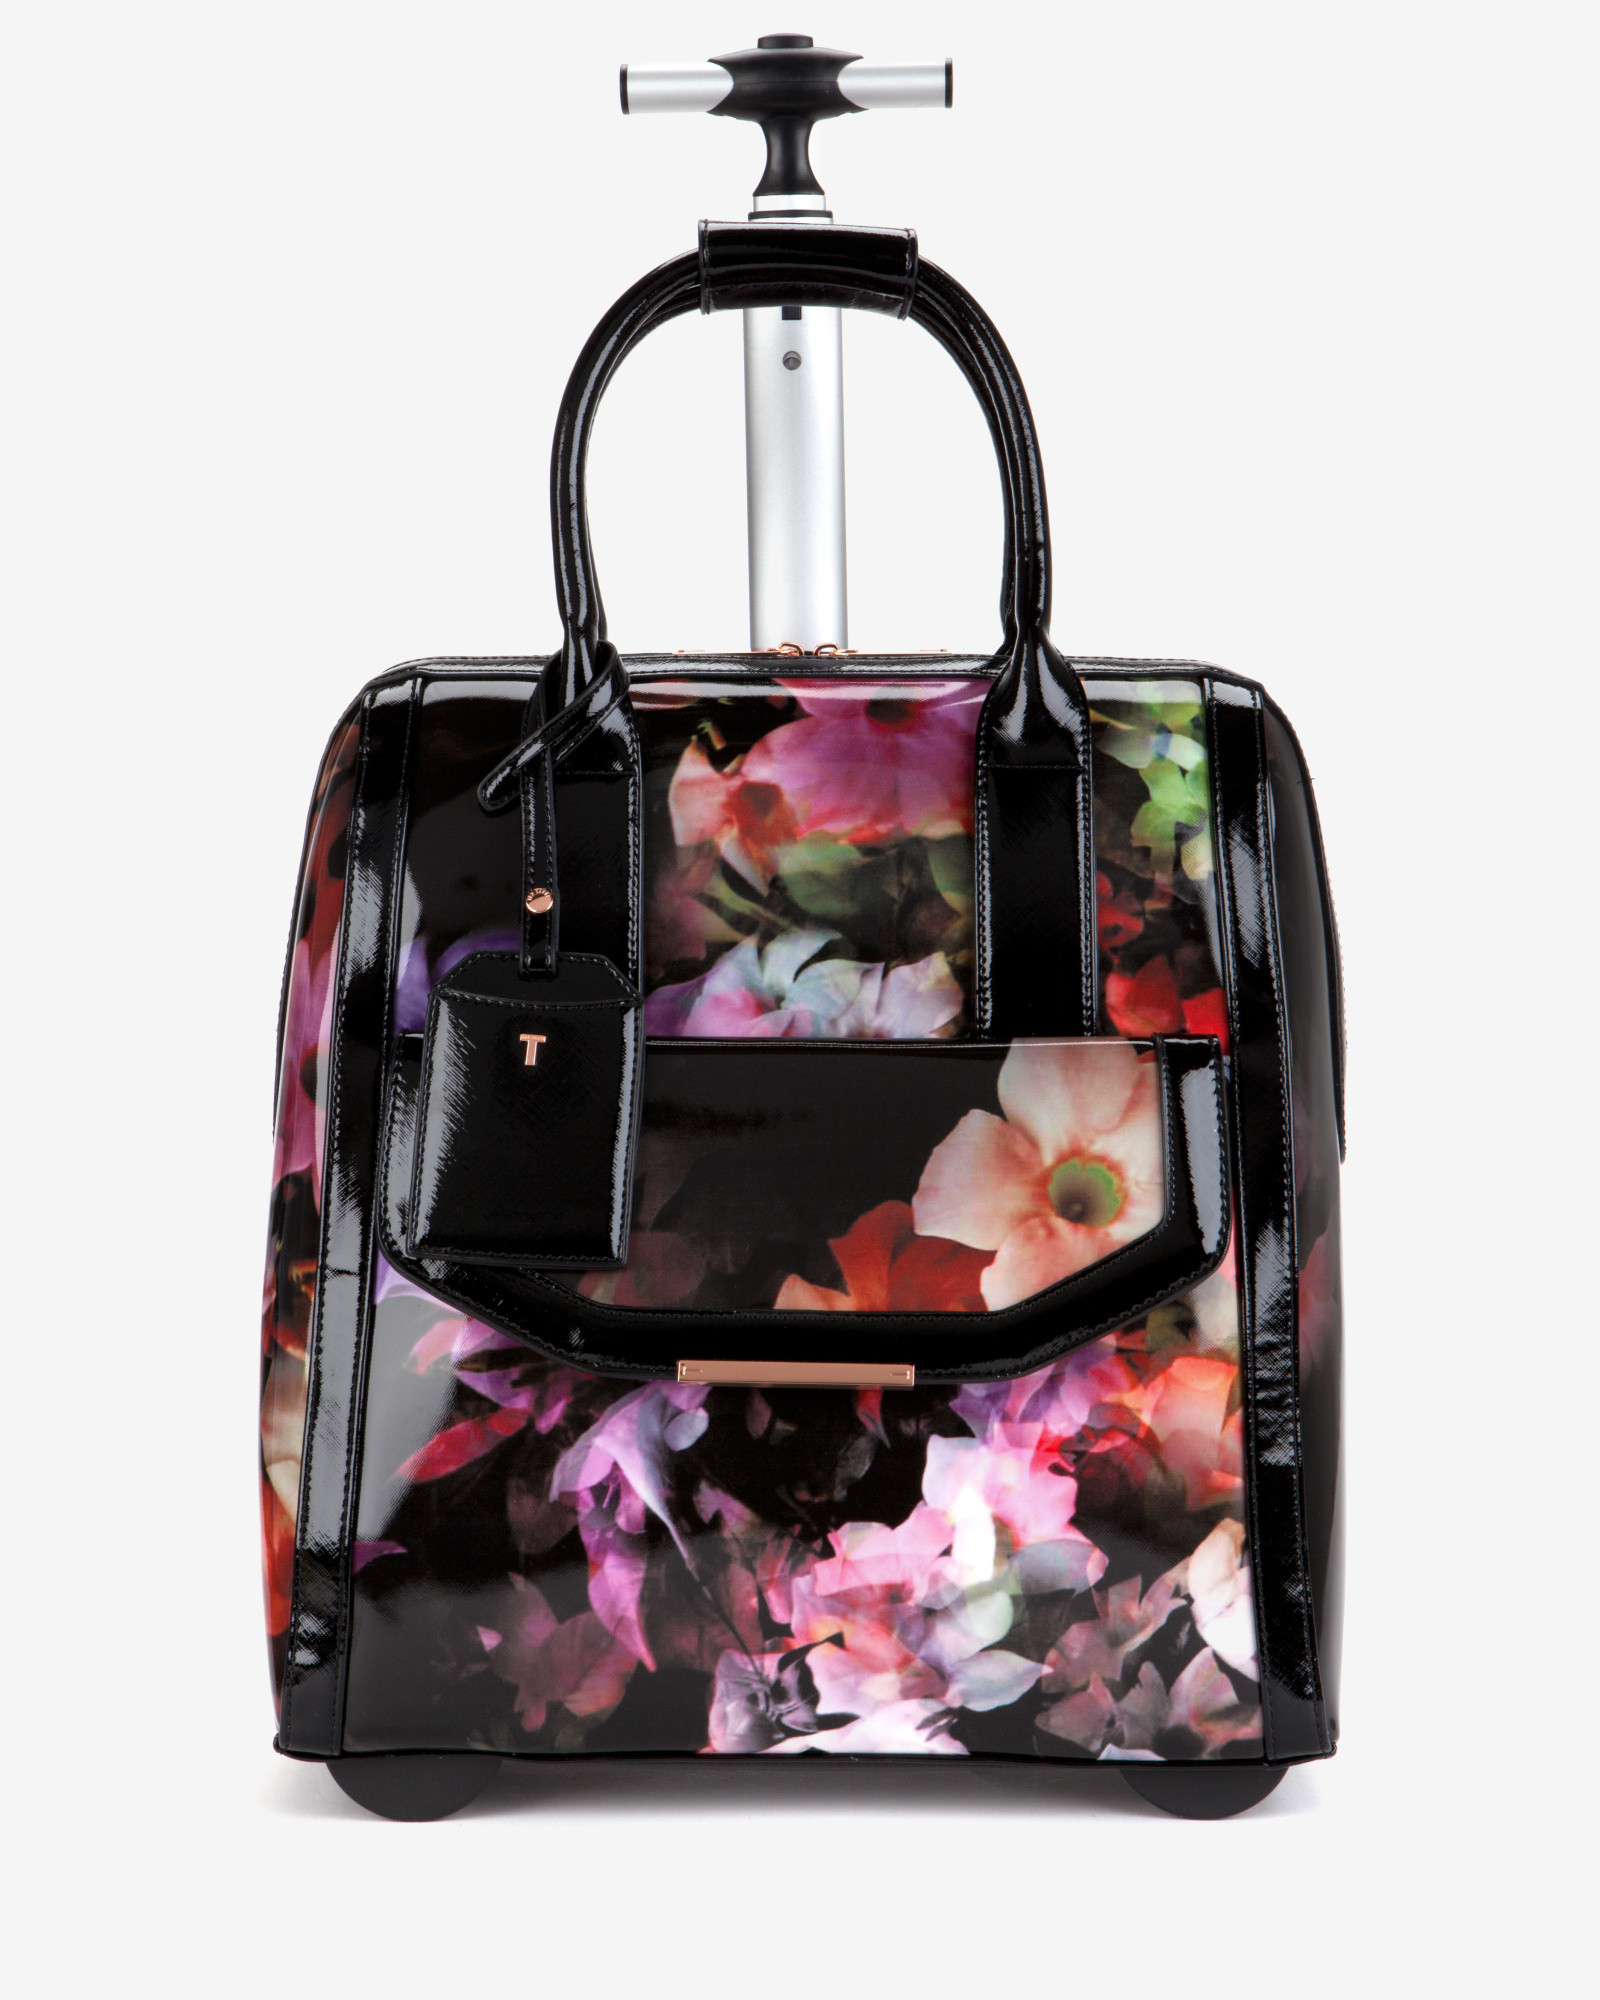 b5146c87fd269 Lyst - Ted Baker Cascading Floral Travel Bag in Black